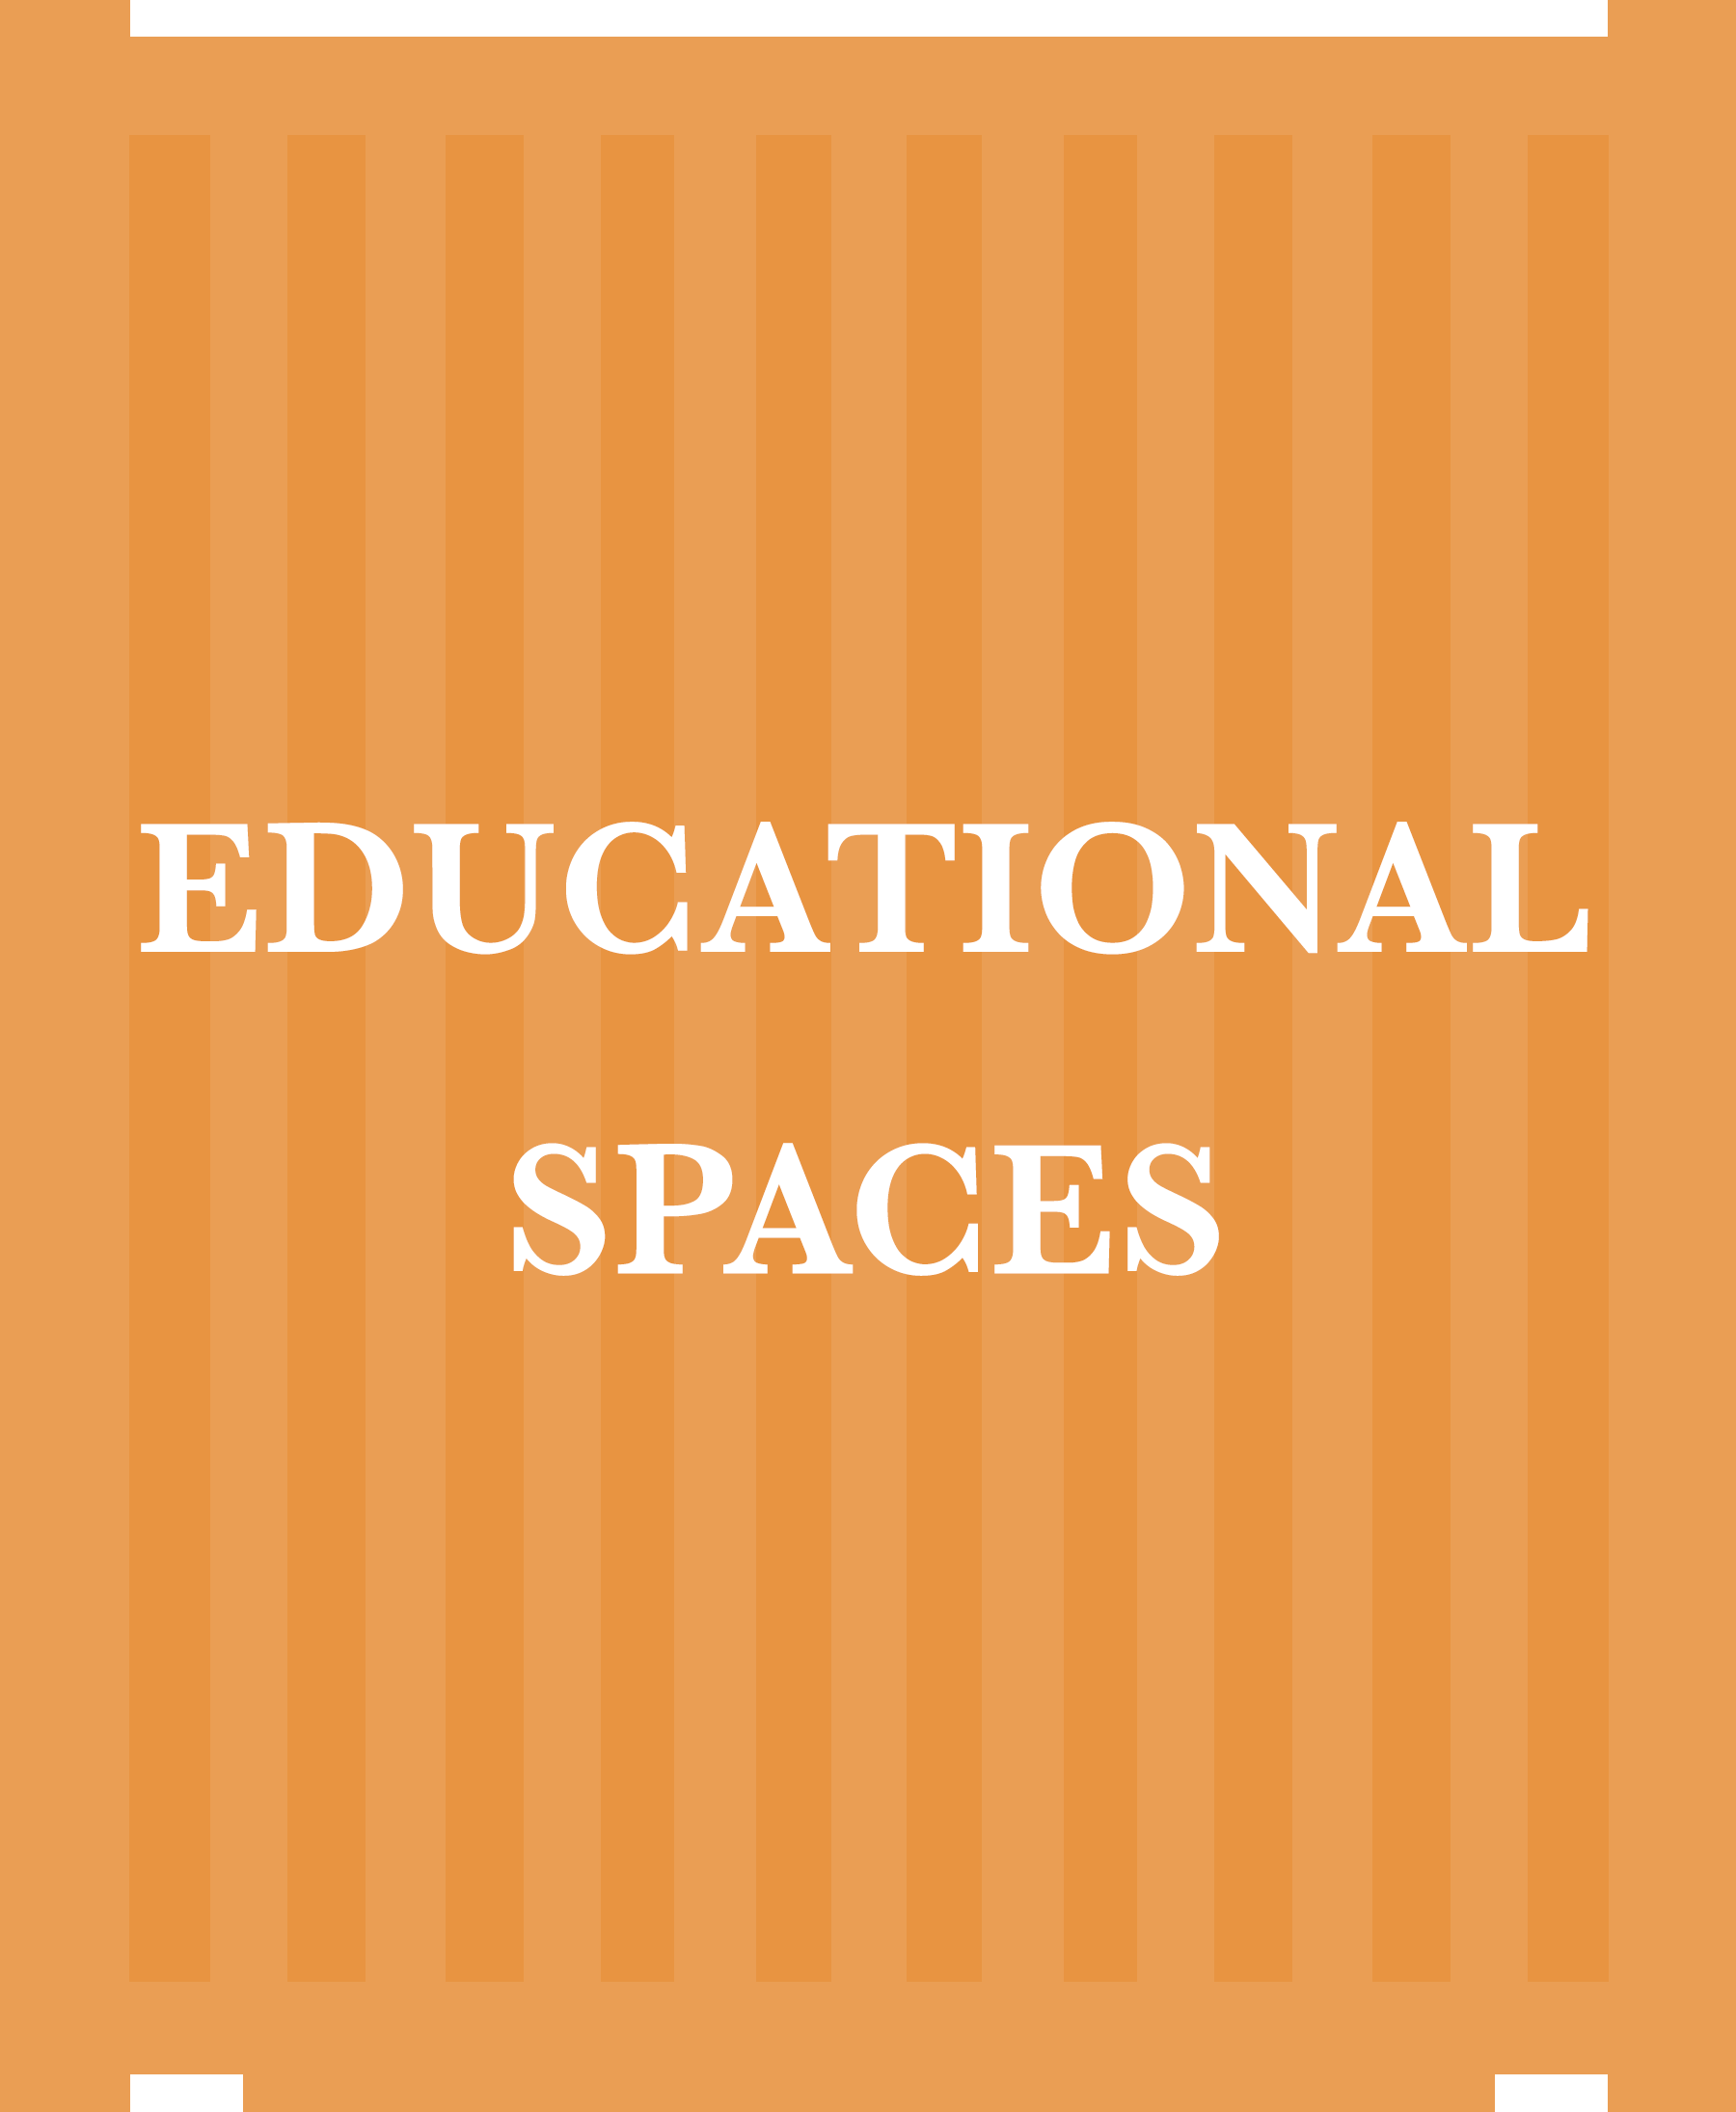 3EDUCATIONAL SPACES